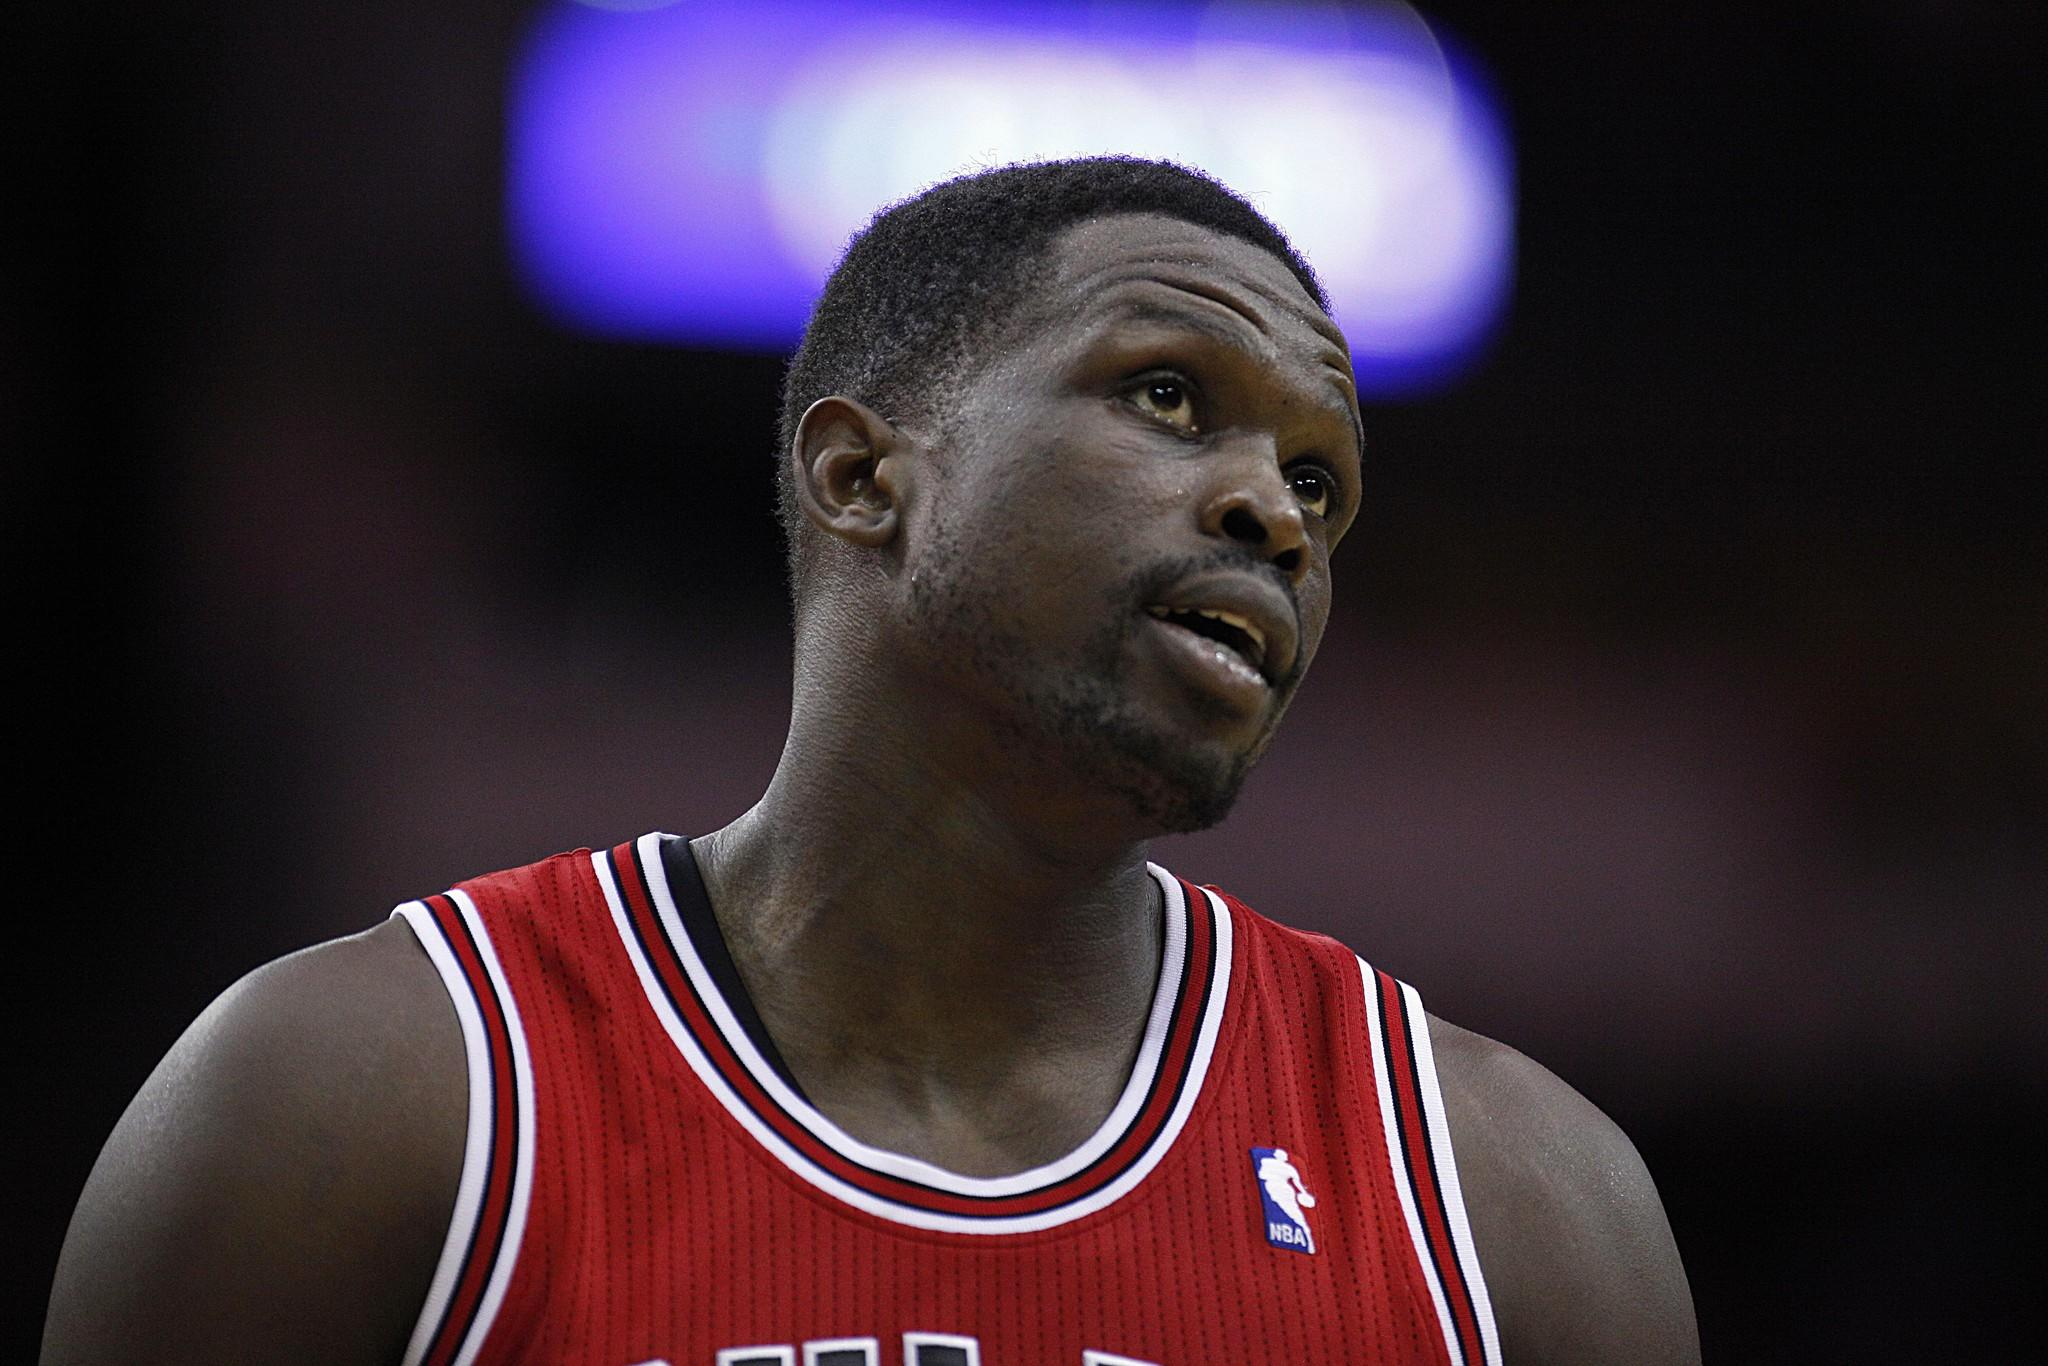 Chicago Bulls forward Luol Deng.